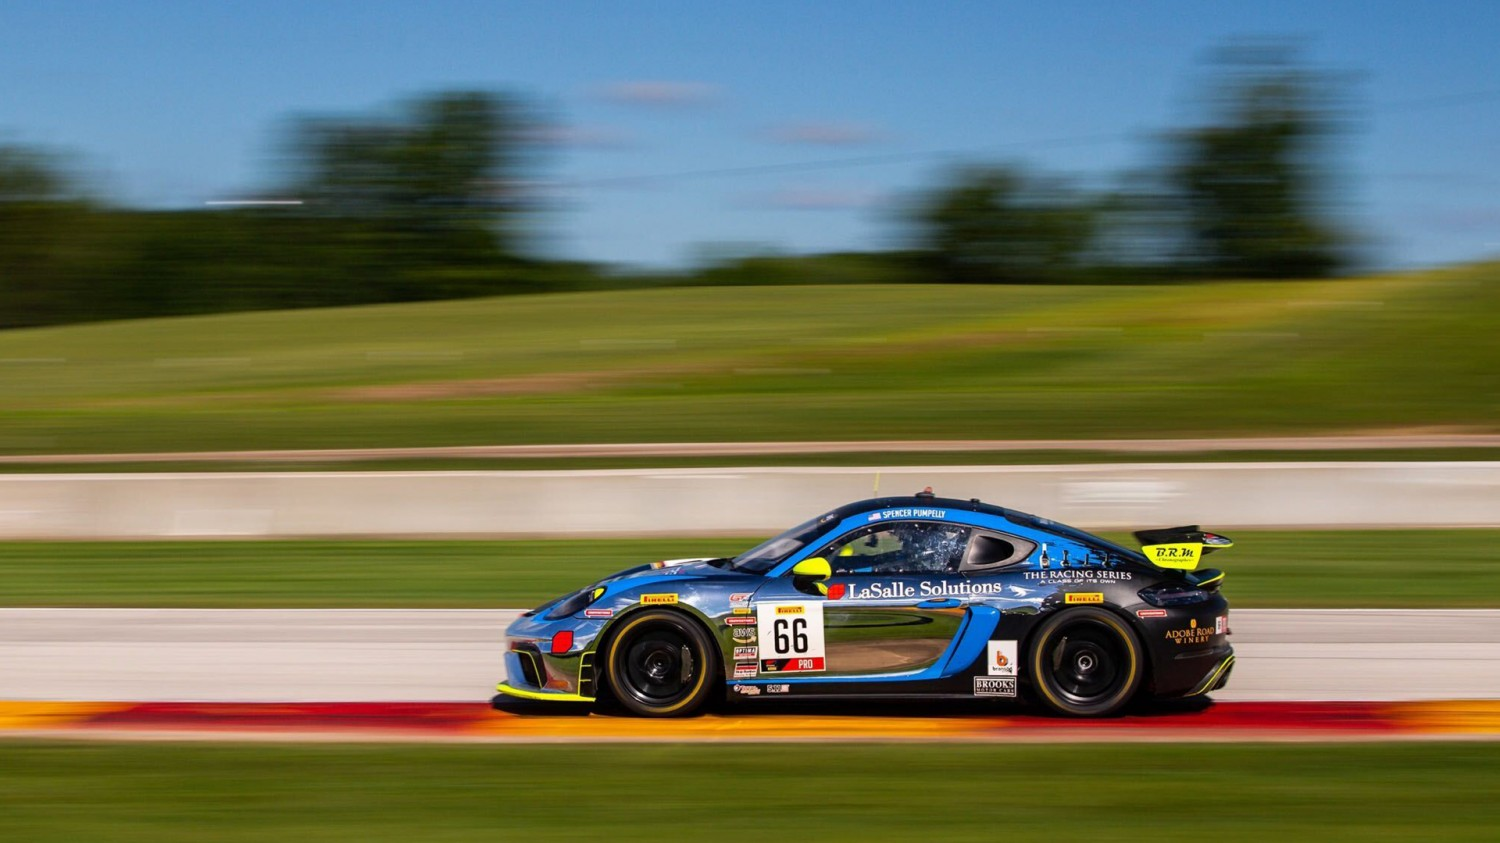 Pumpelly Outduels Cooper To Take Exciting Pirelli GT4 America Sprint Race 2 Victory at Road America